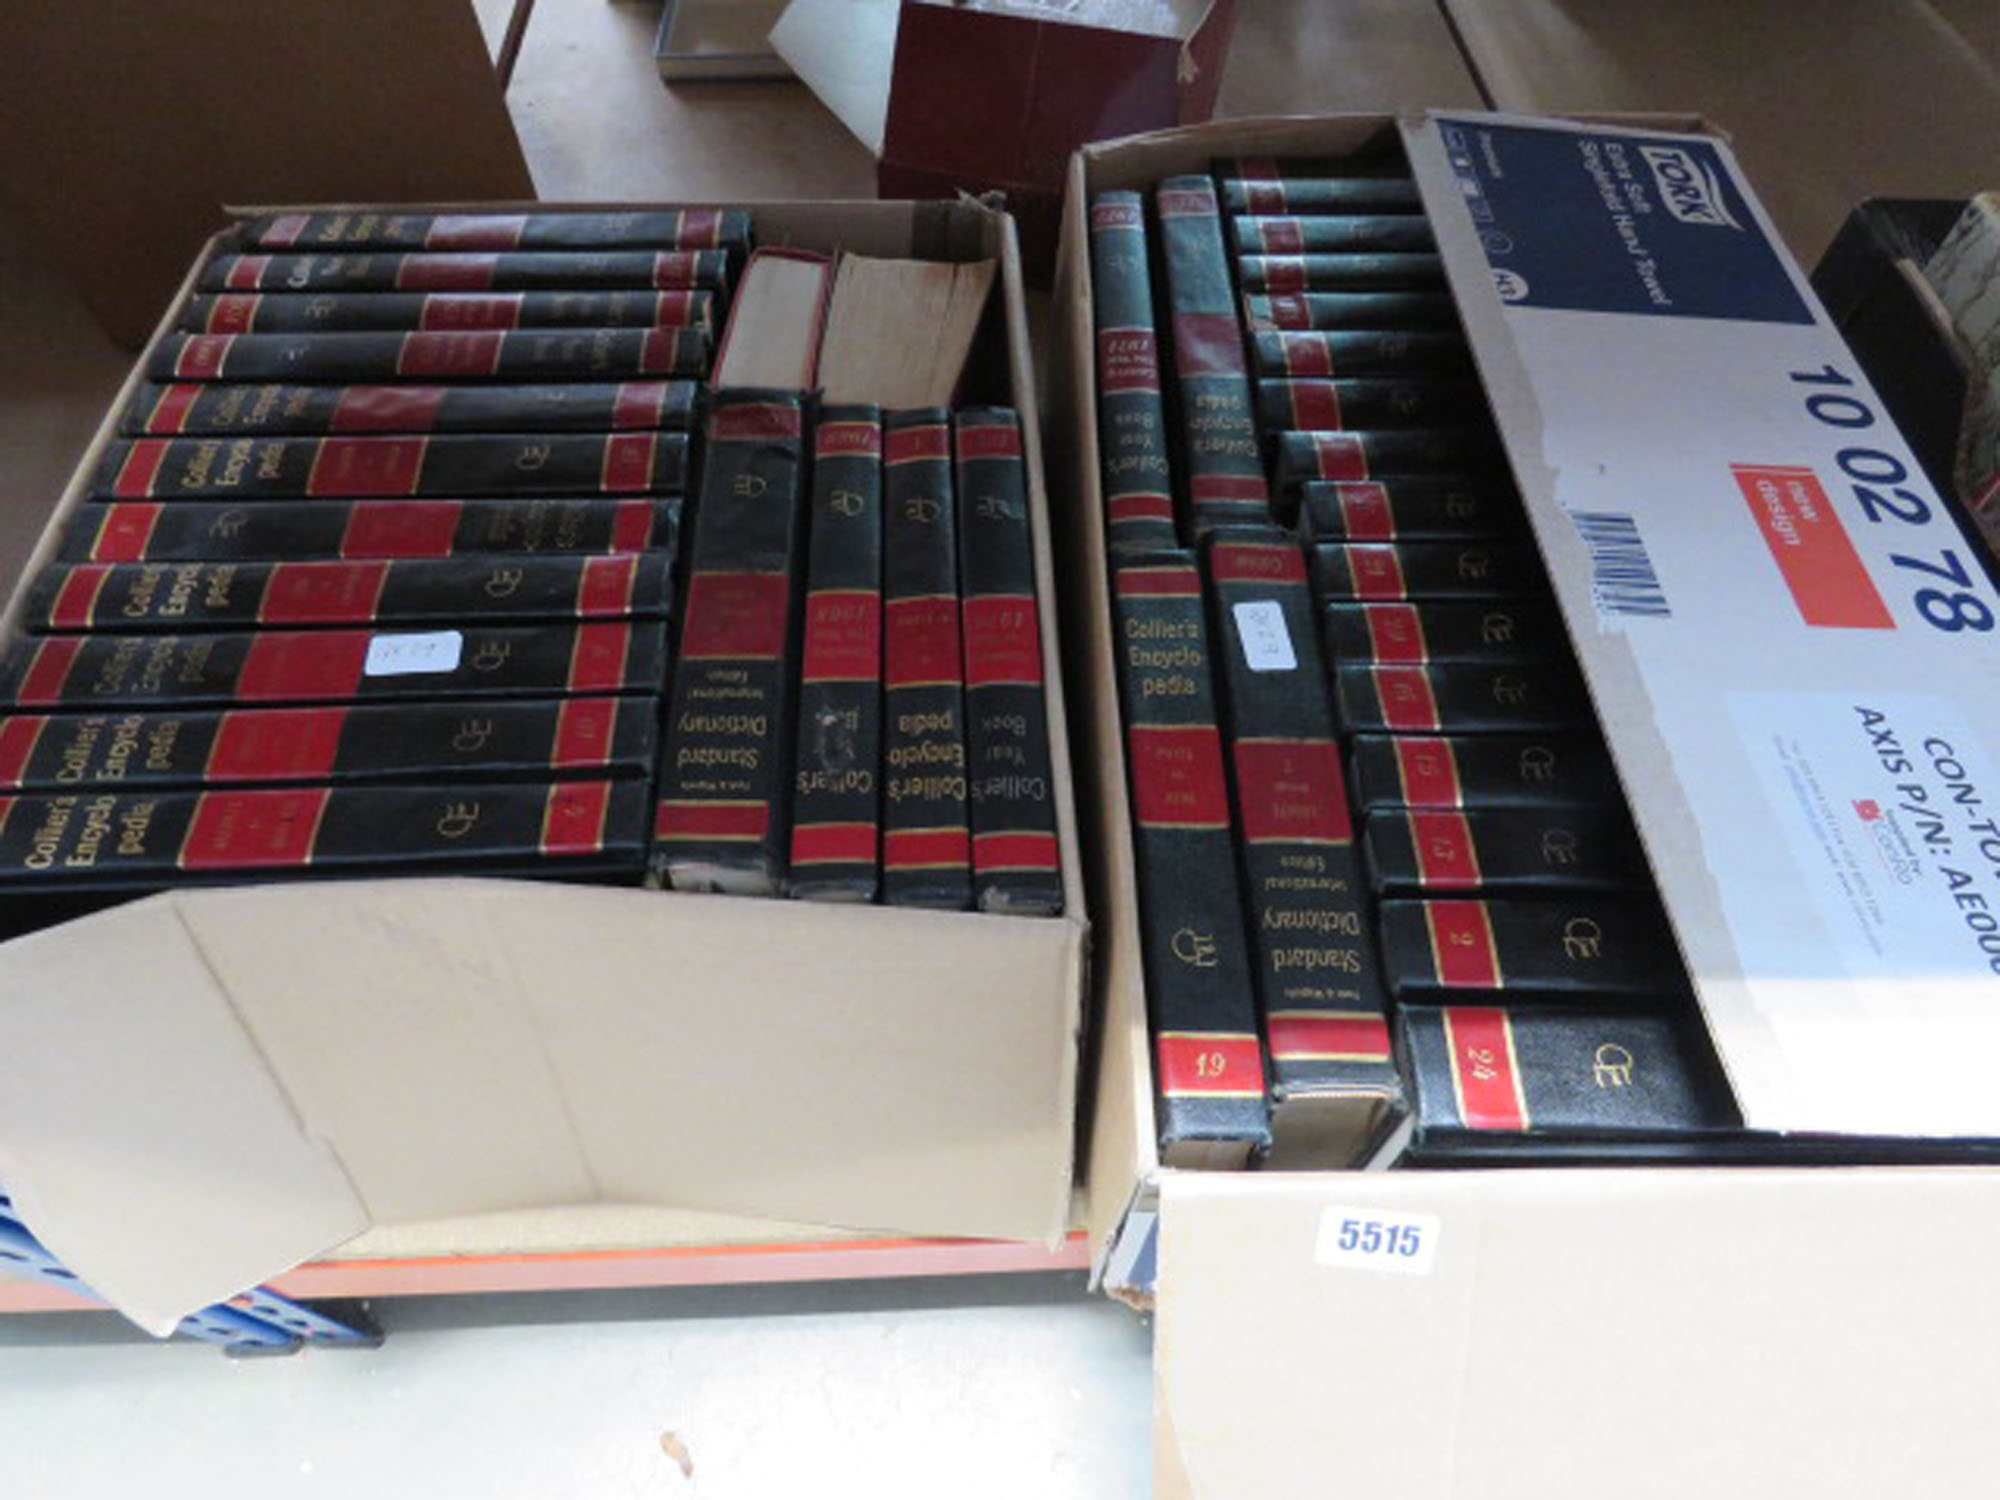 2 boxes containing Colliers encyclopedia